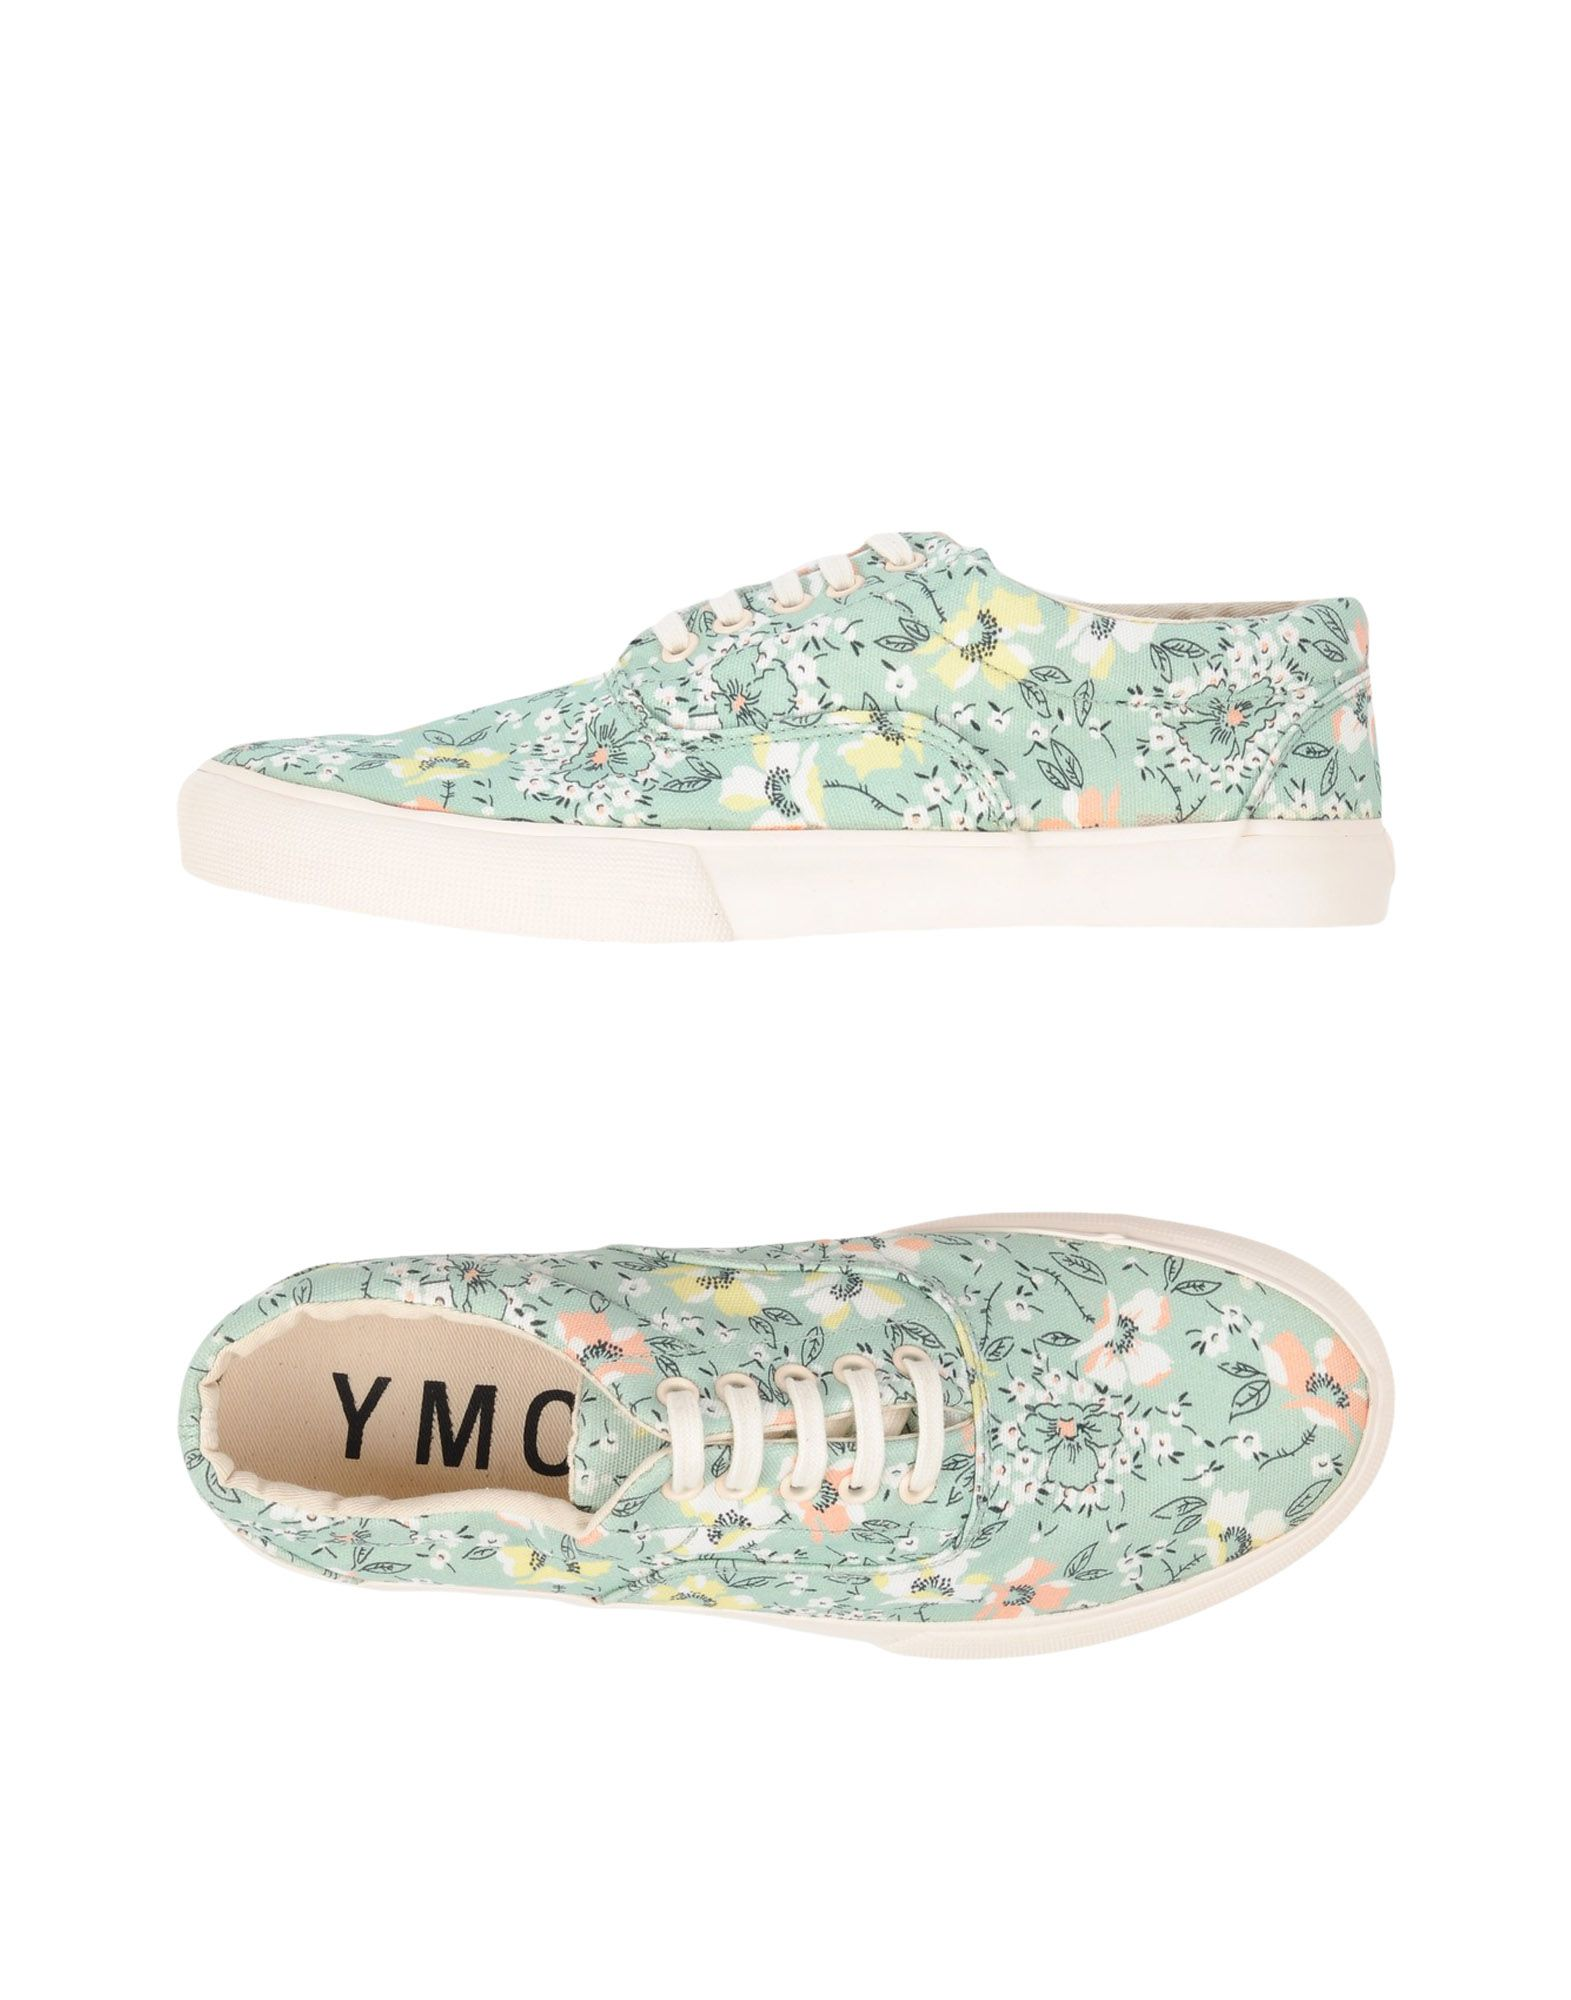 Sneakers Ymc You Must Create Homme - Sneakers Ymc You Must Create sur